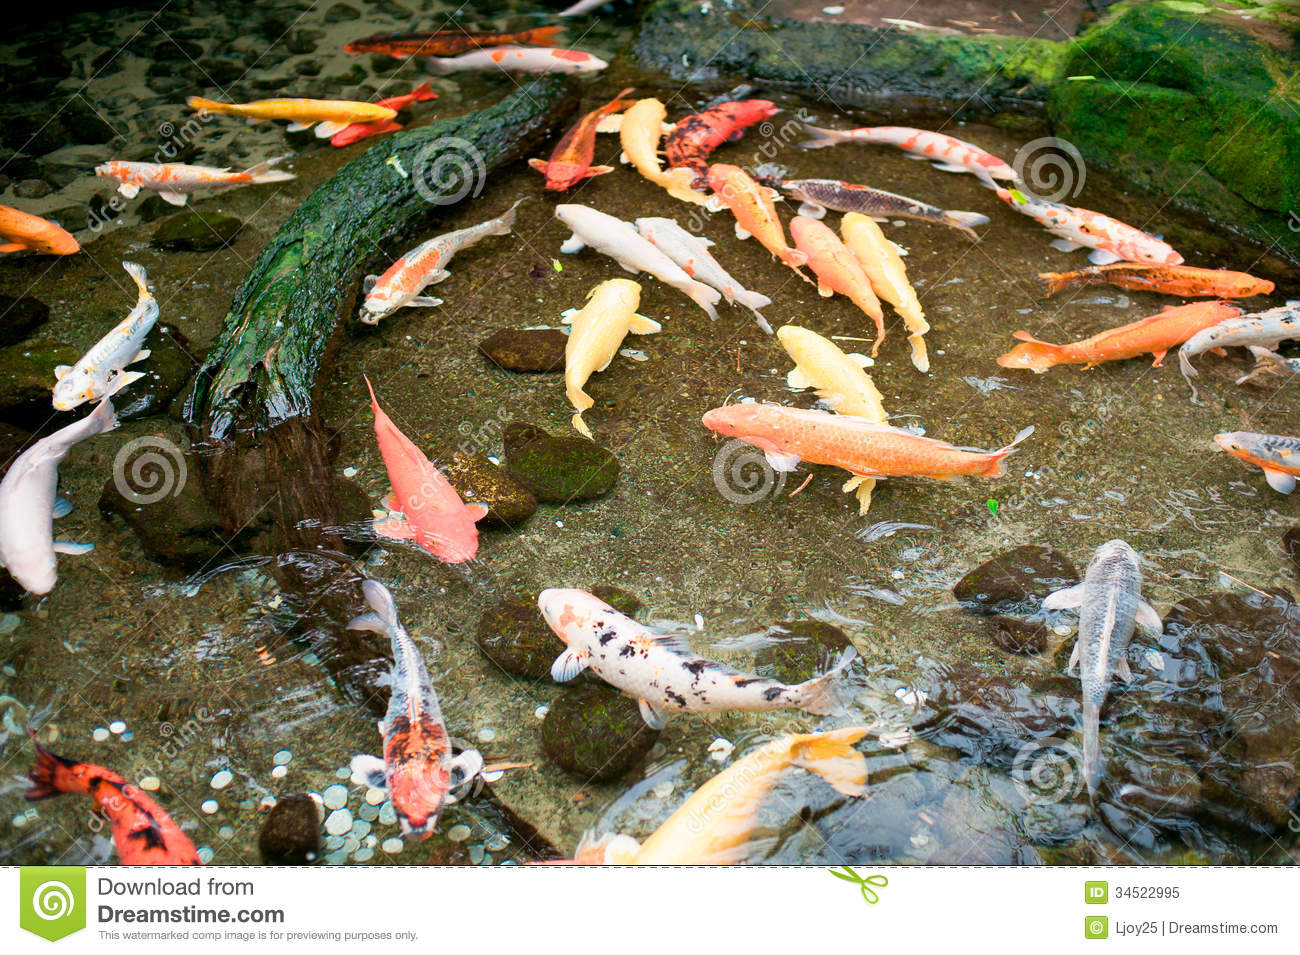 Koi fish in water stock image image of peace landscape for Koi carp fish pond